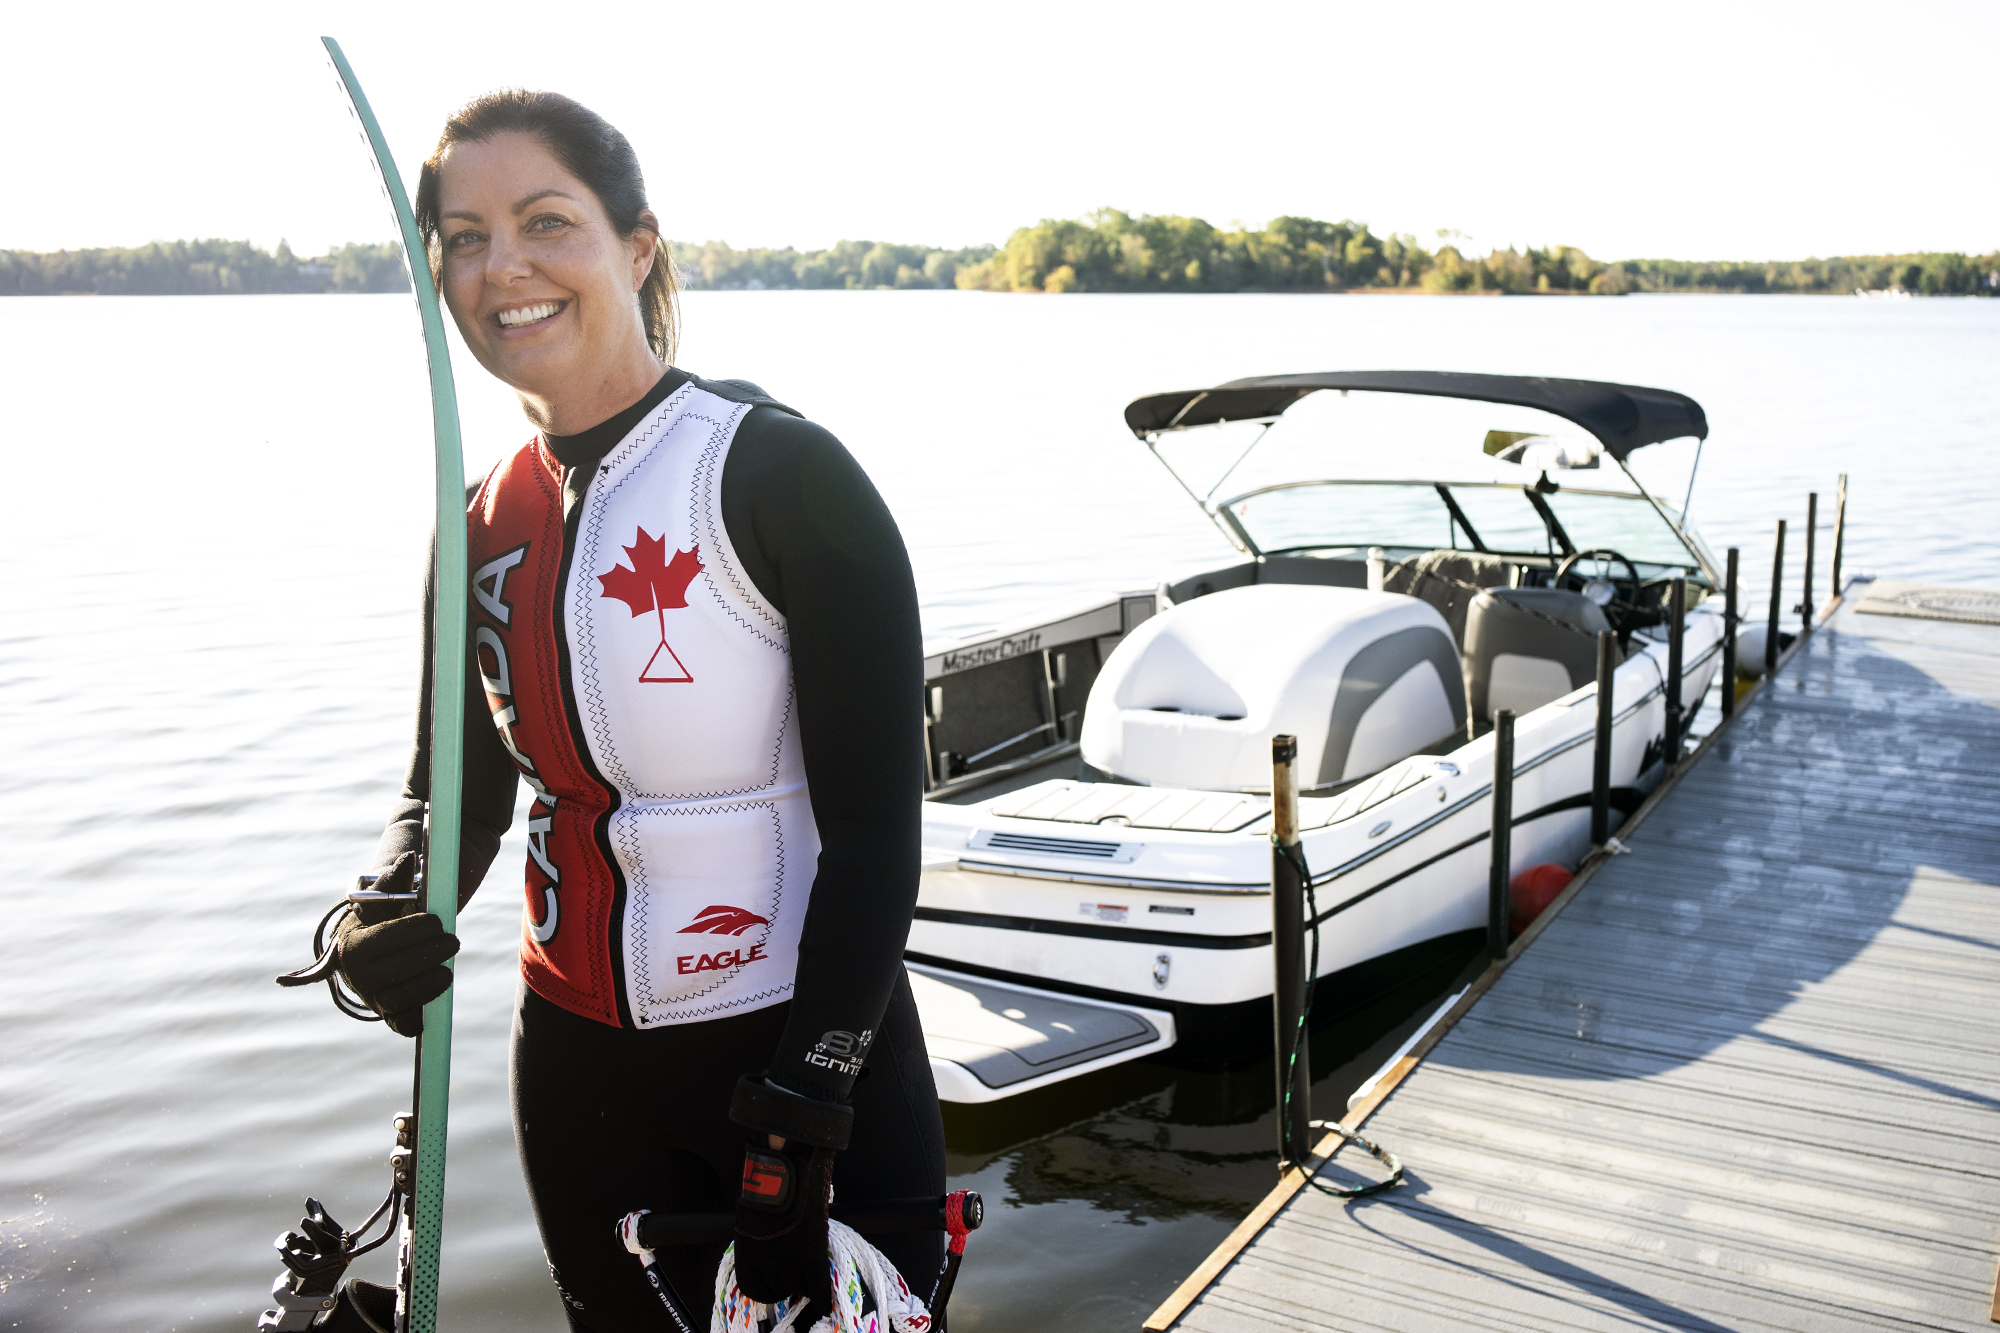 Wendy Durigon to represent Canada at waterskiing championship in Peru (4 photos)